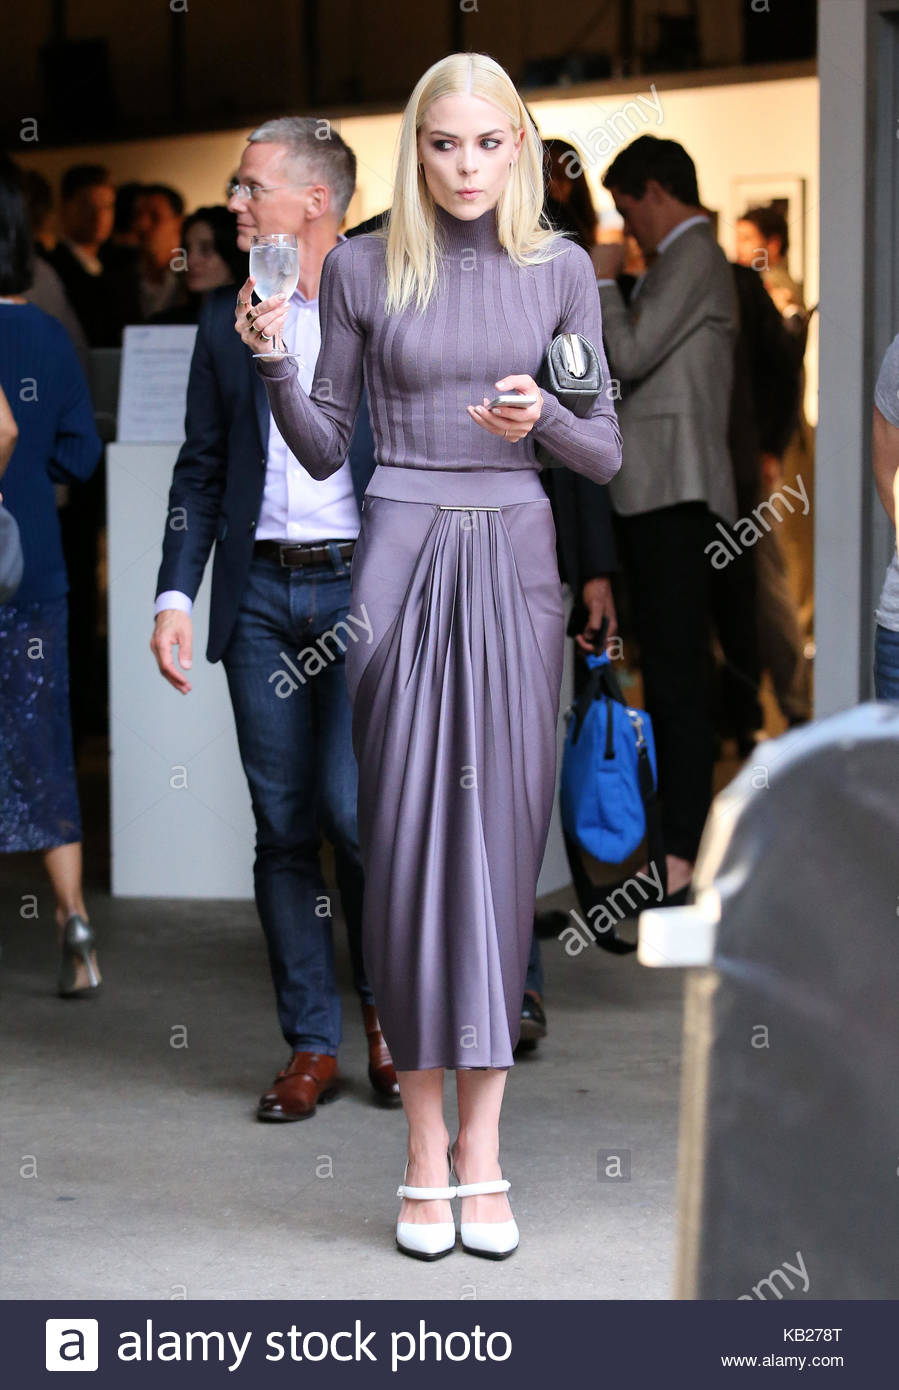 Jaime King. Actress Jaime King, wearing a purple evening gown, holds ...